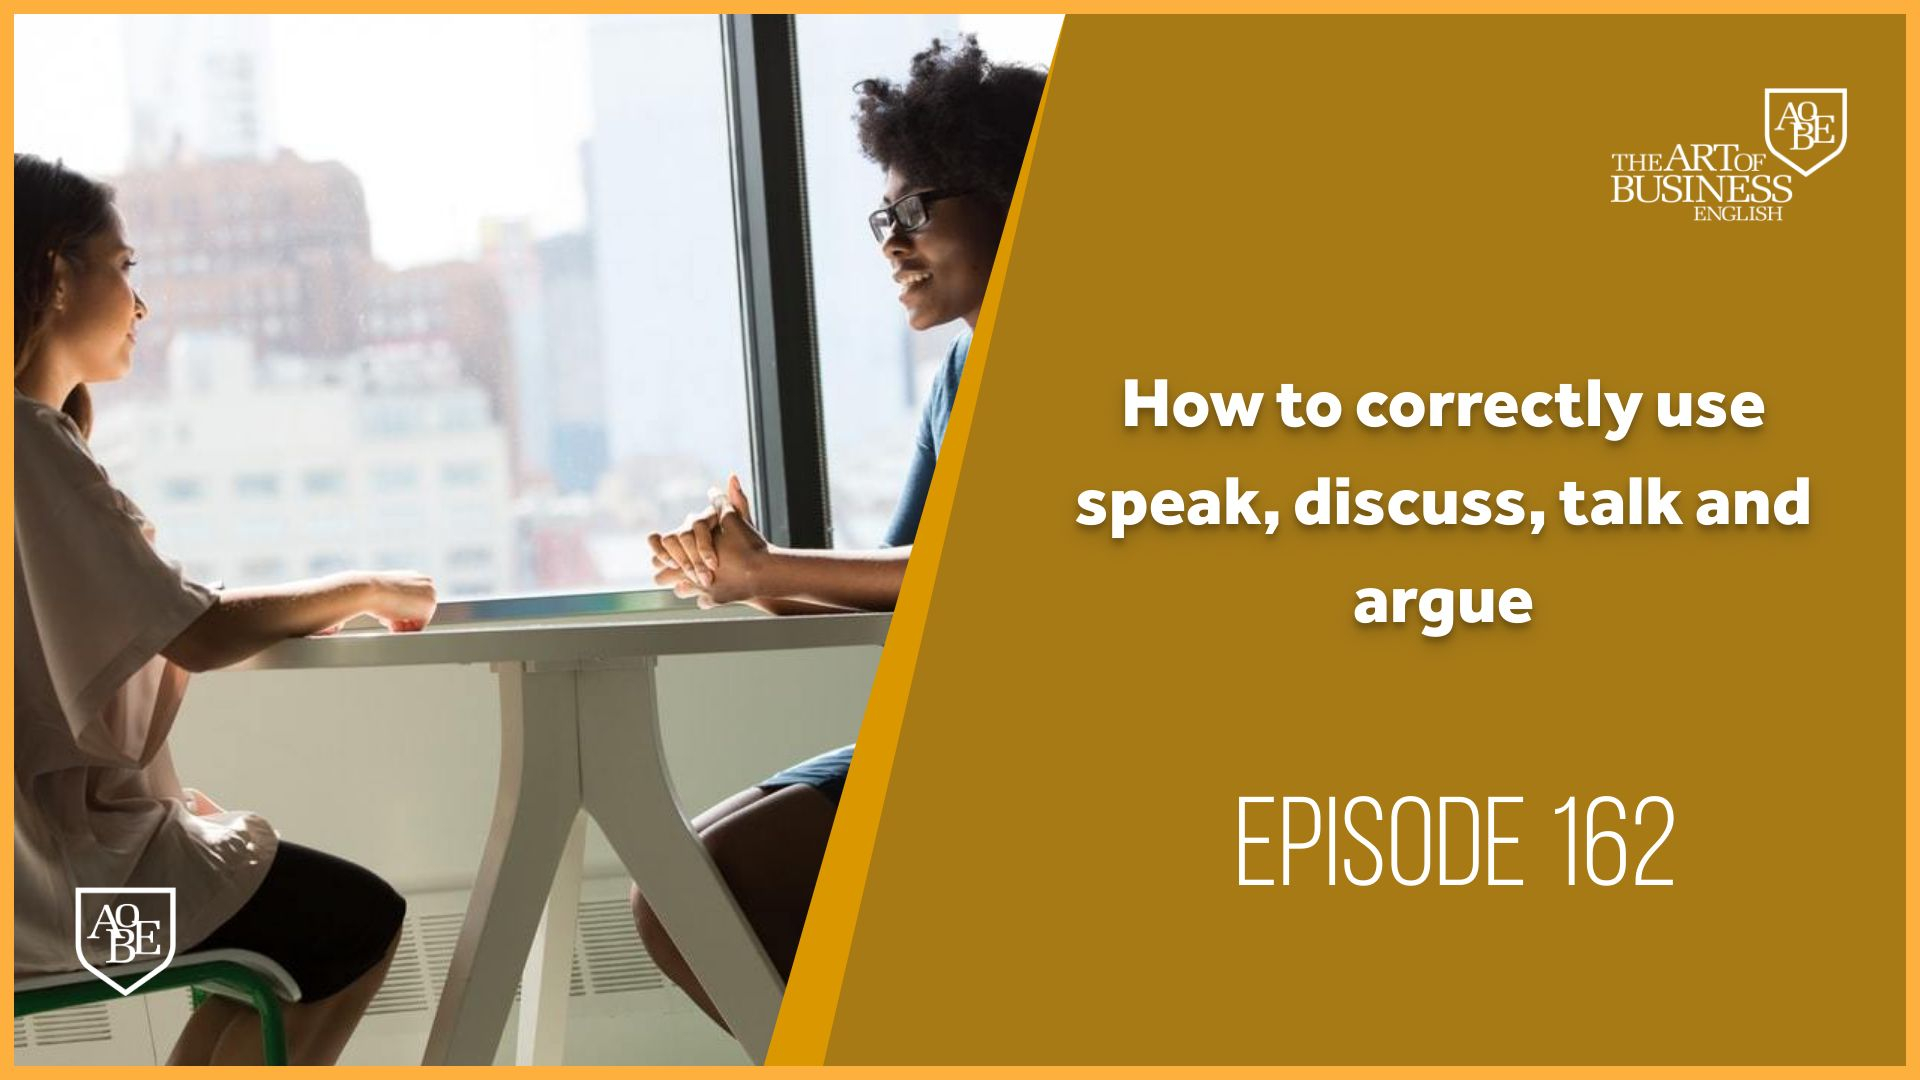 How to correctly use speak, discuss, talk and argue